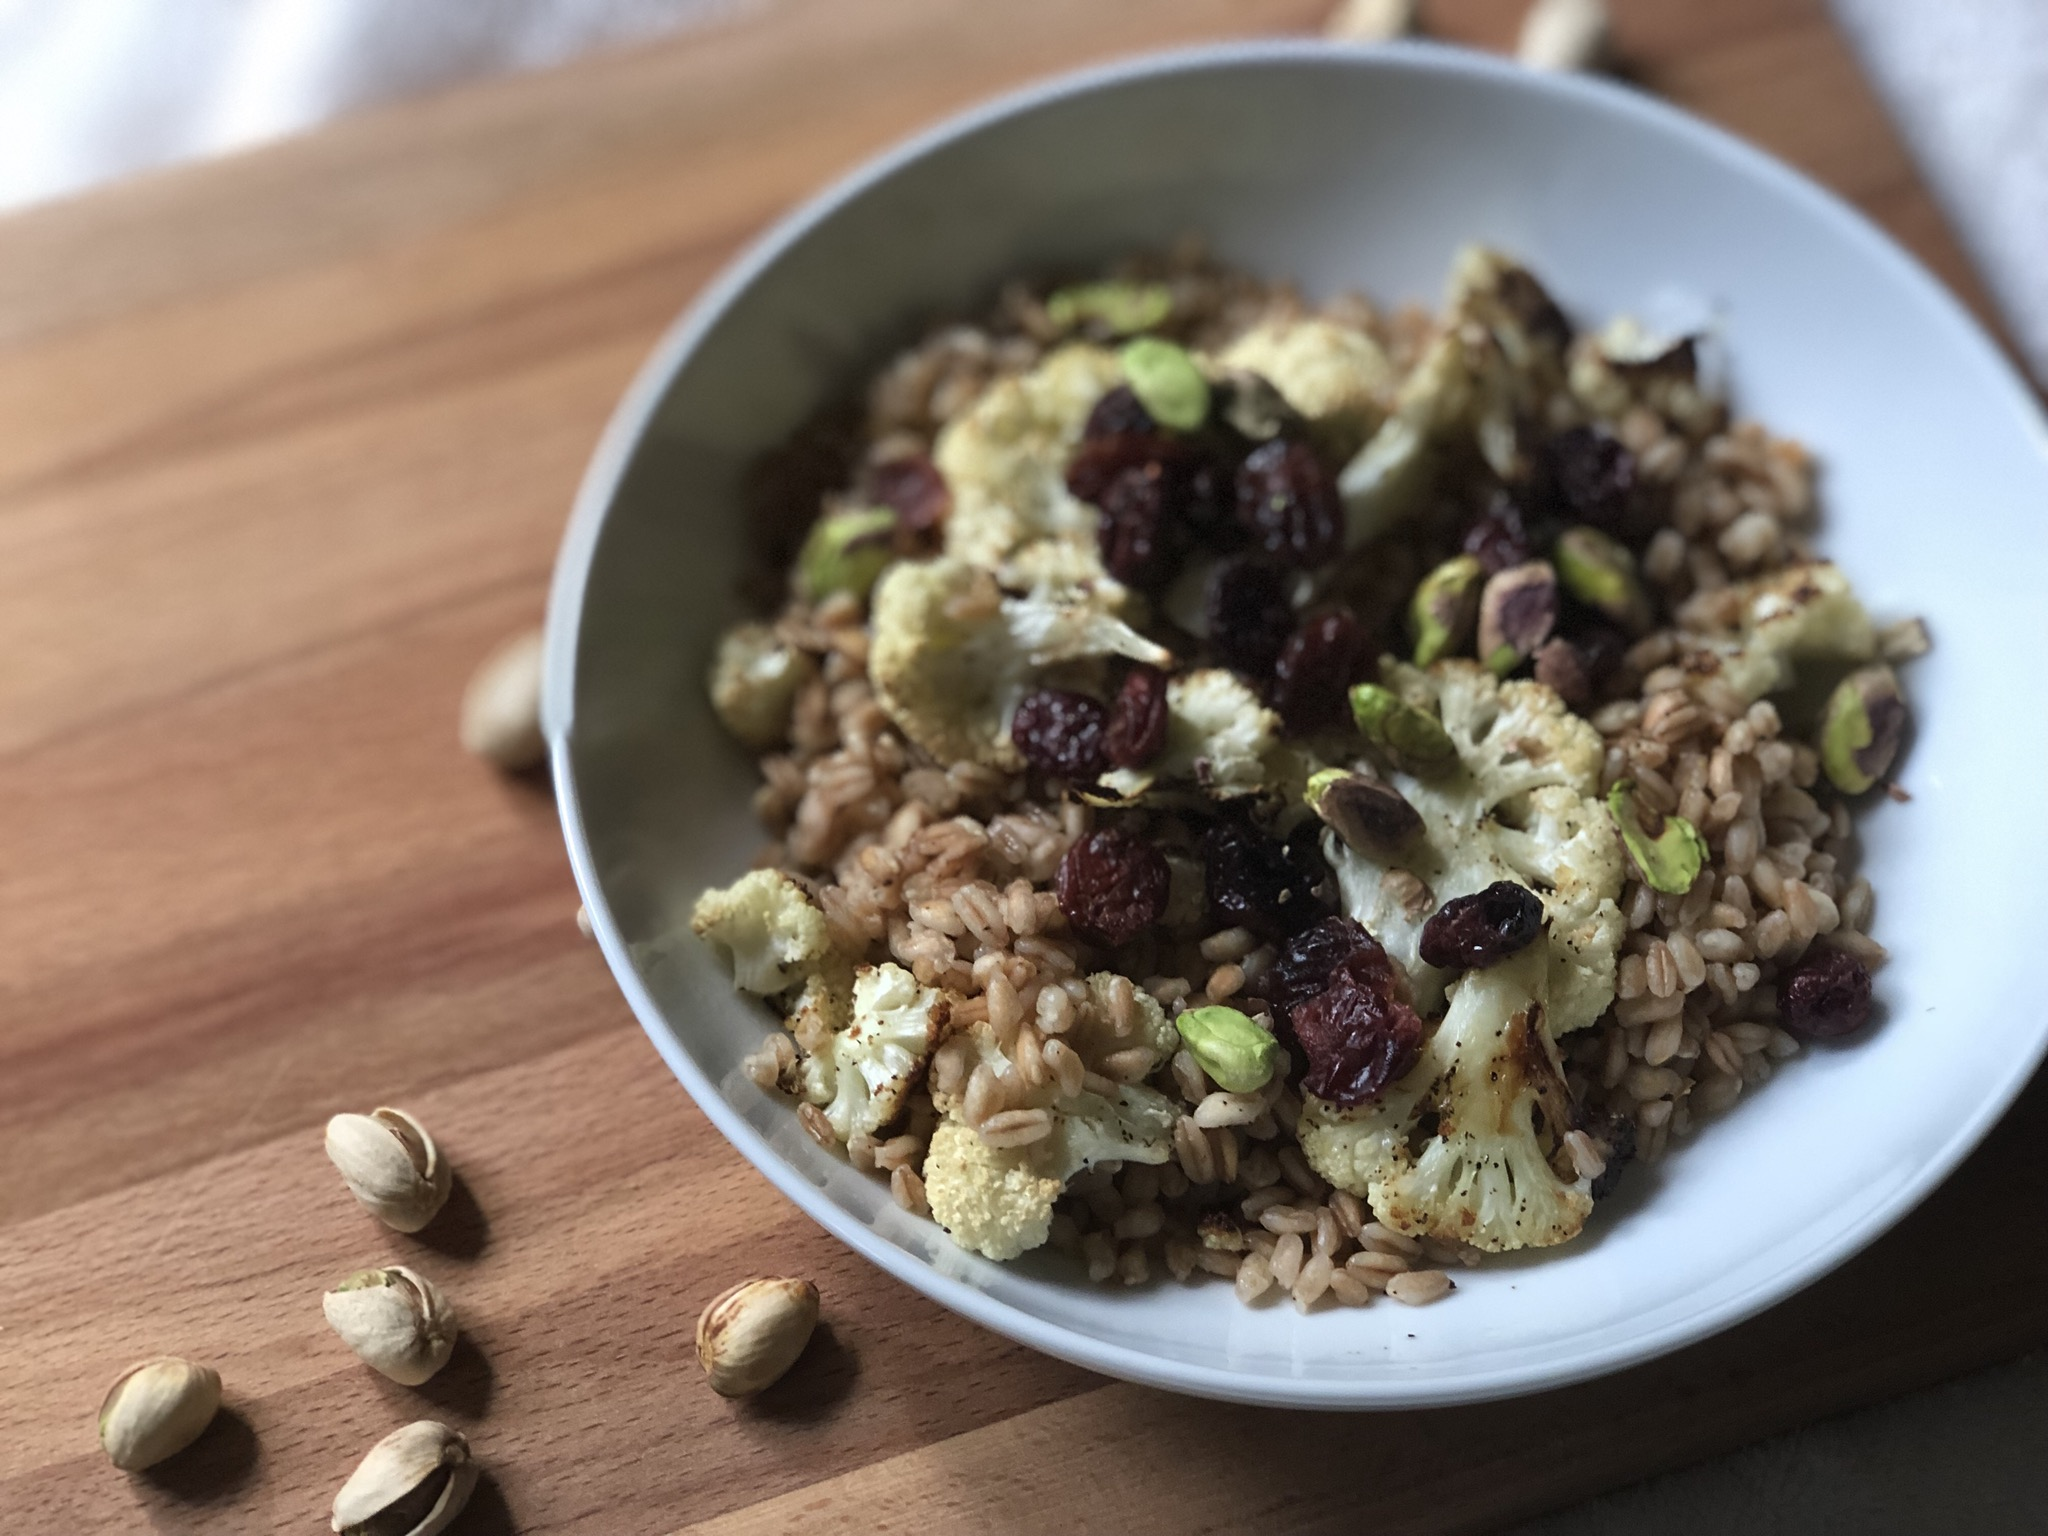 Instant Pot® Warm Vegetarian Farro Salad with Cauliflower, Pistachios, and Cranberries